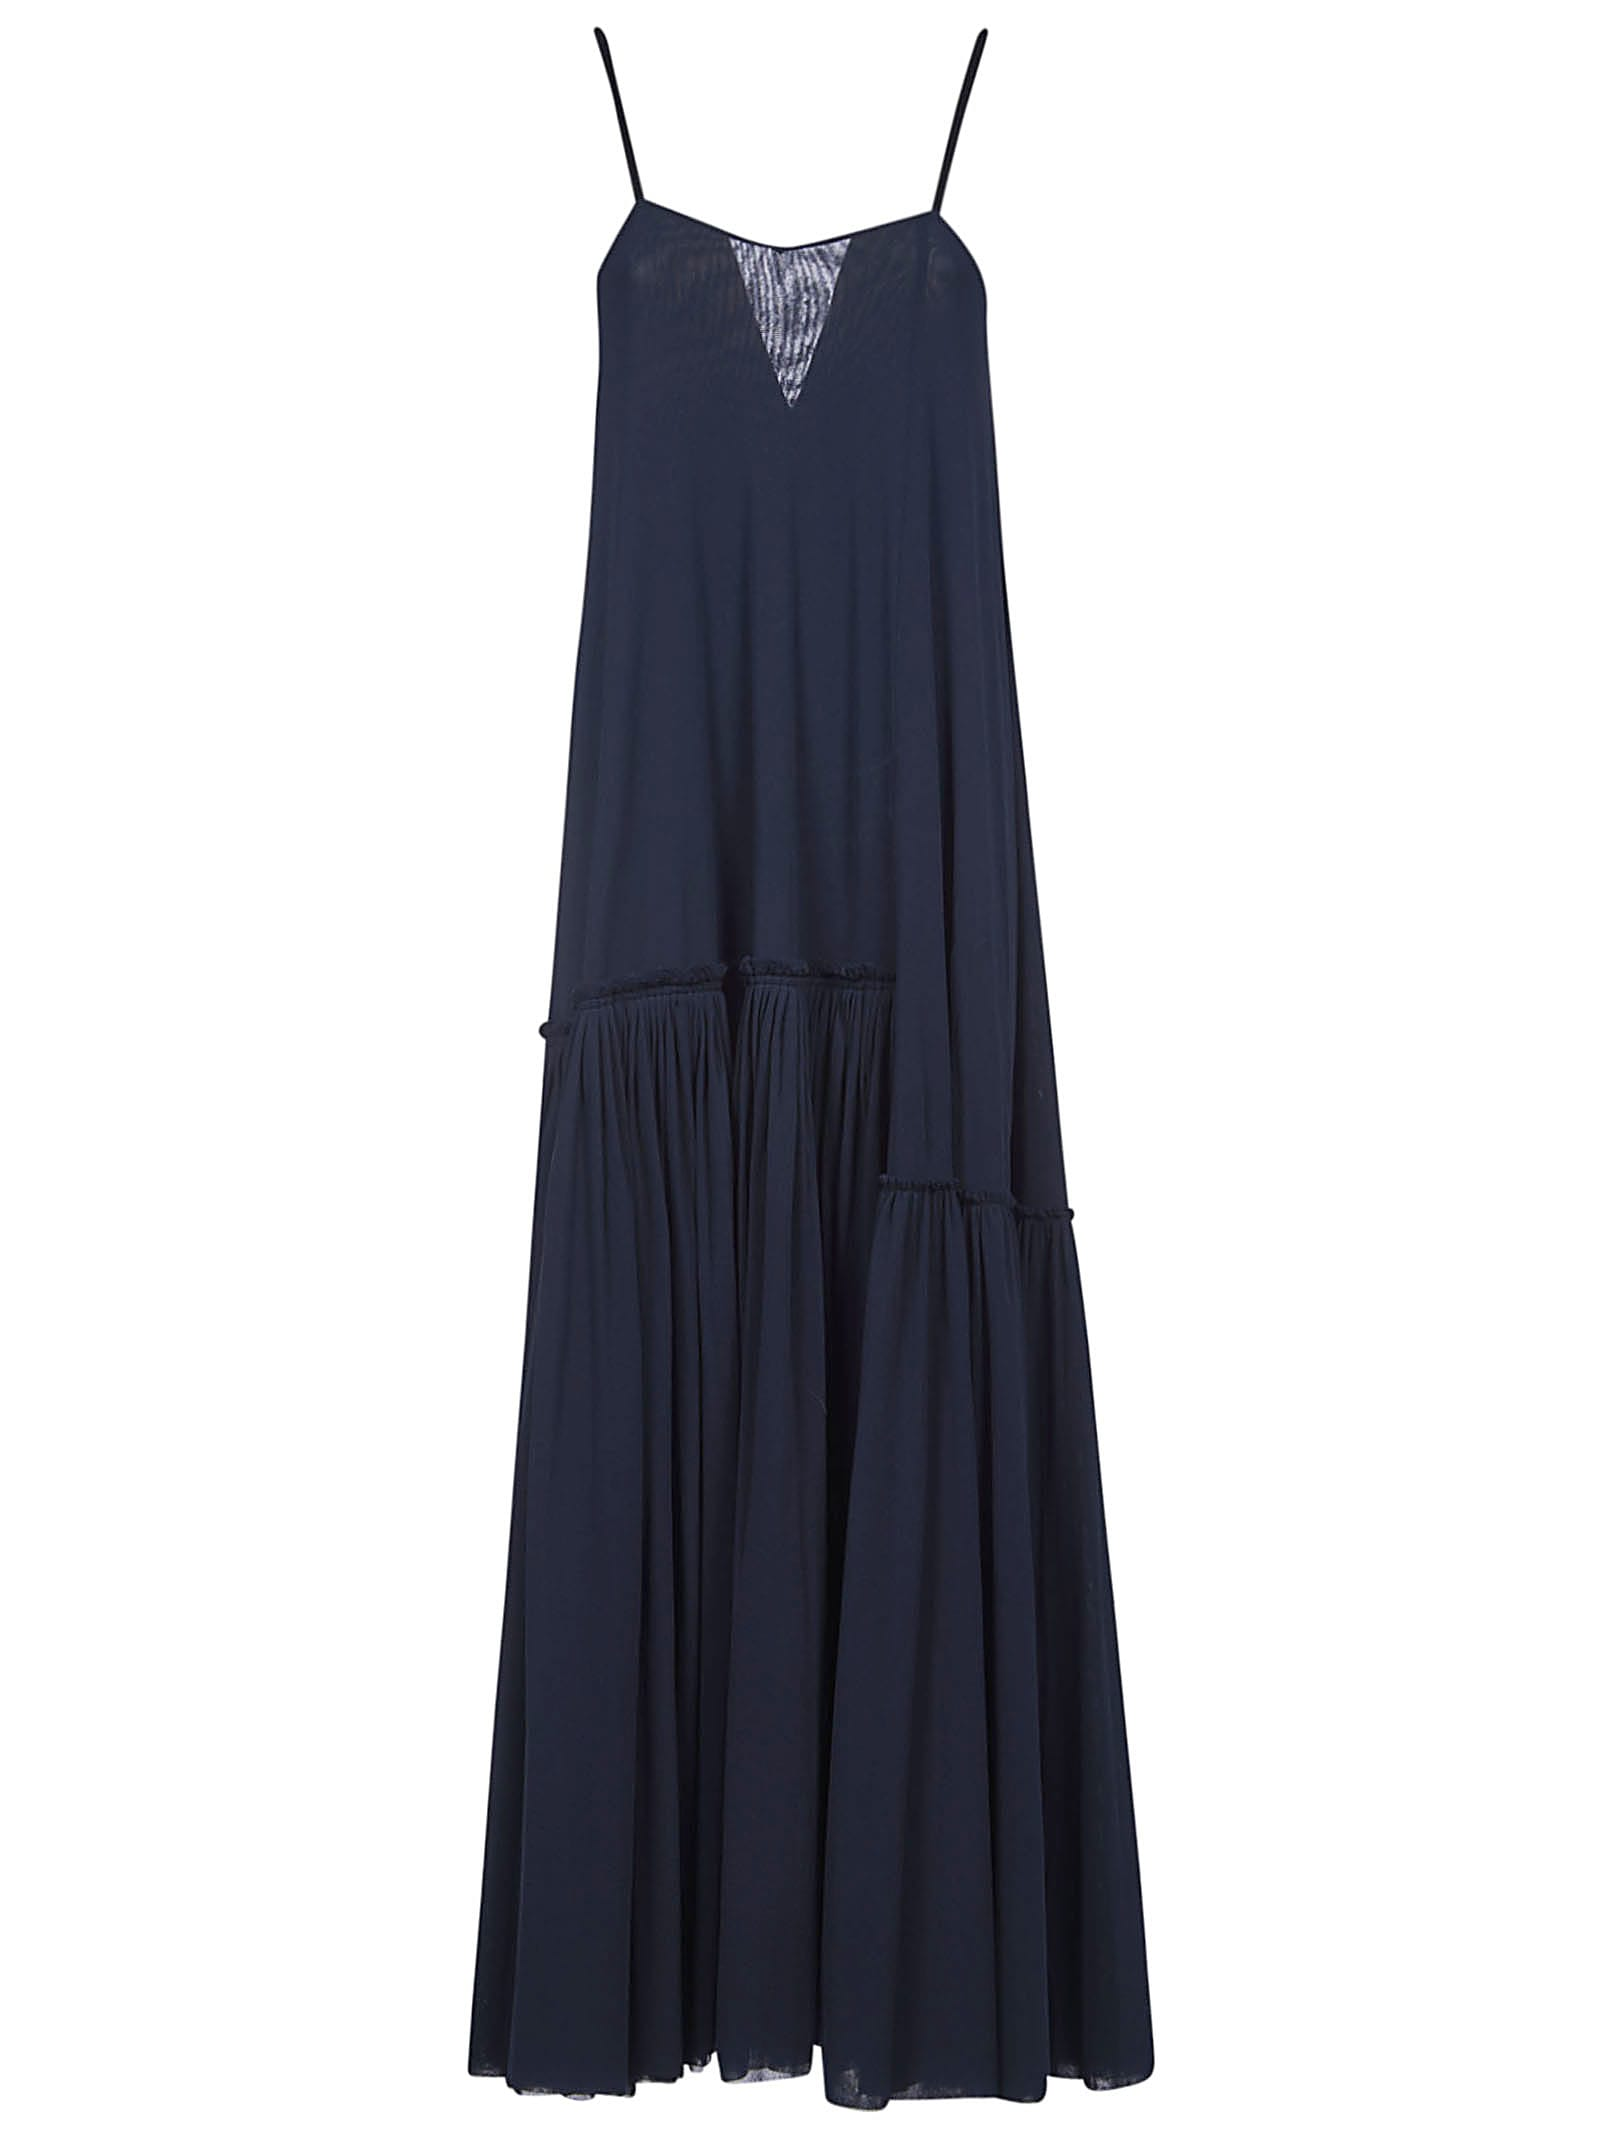 Buy Jil Sander Pleated Skirt Maxi Dress online, shop Jil Sander with free shipping